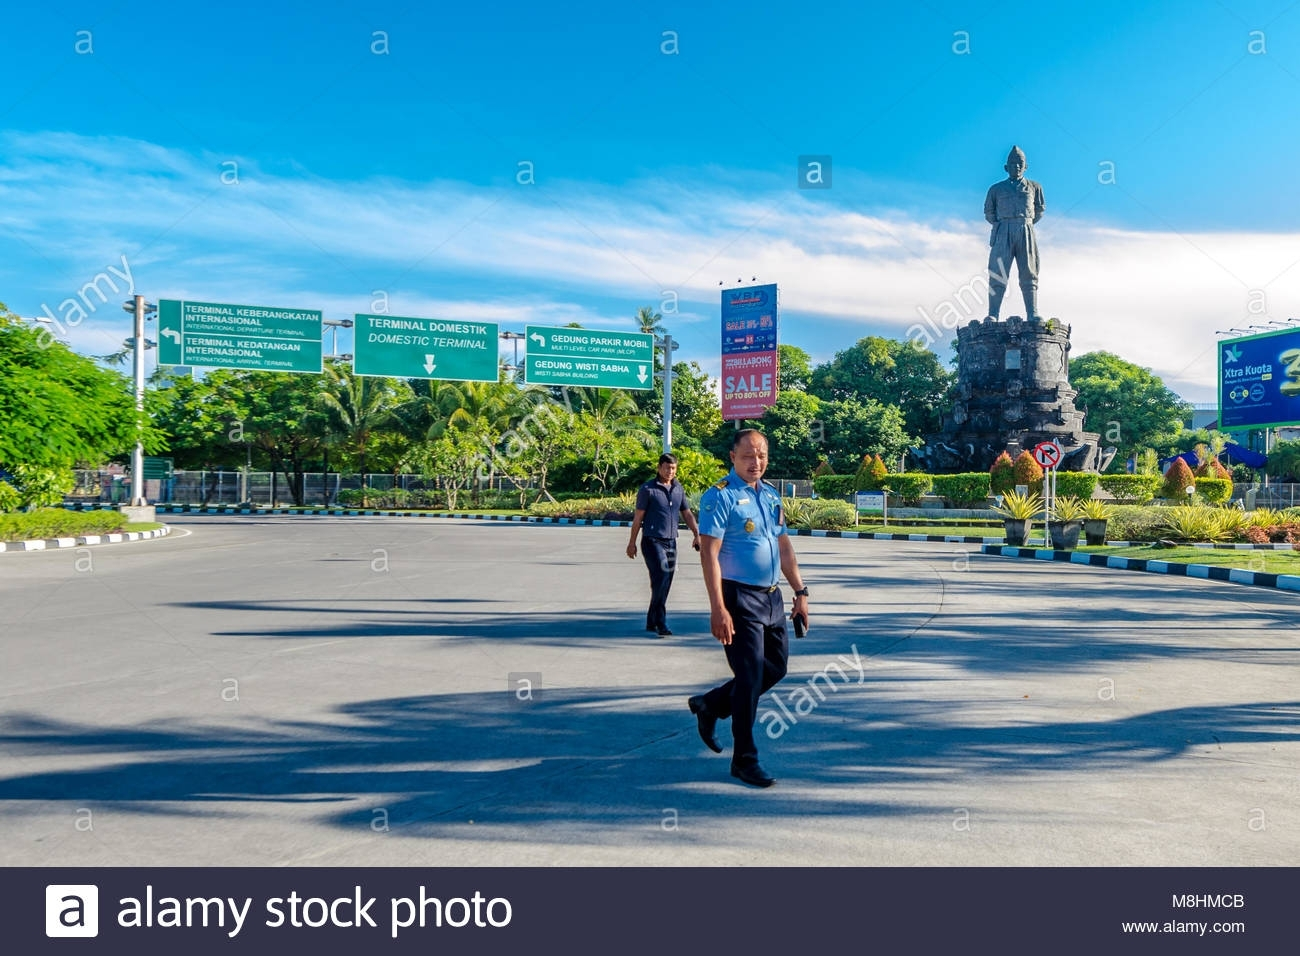 Indonesia 17 March 2018 Tuban, Kuta In Bali, Indonesia Is Empty And inside Travel To Indonesia In March